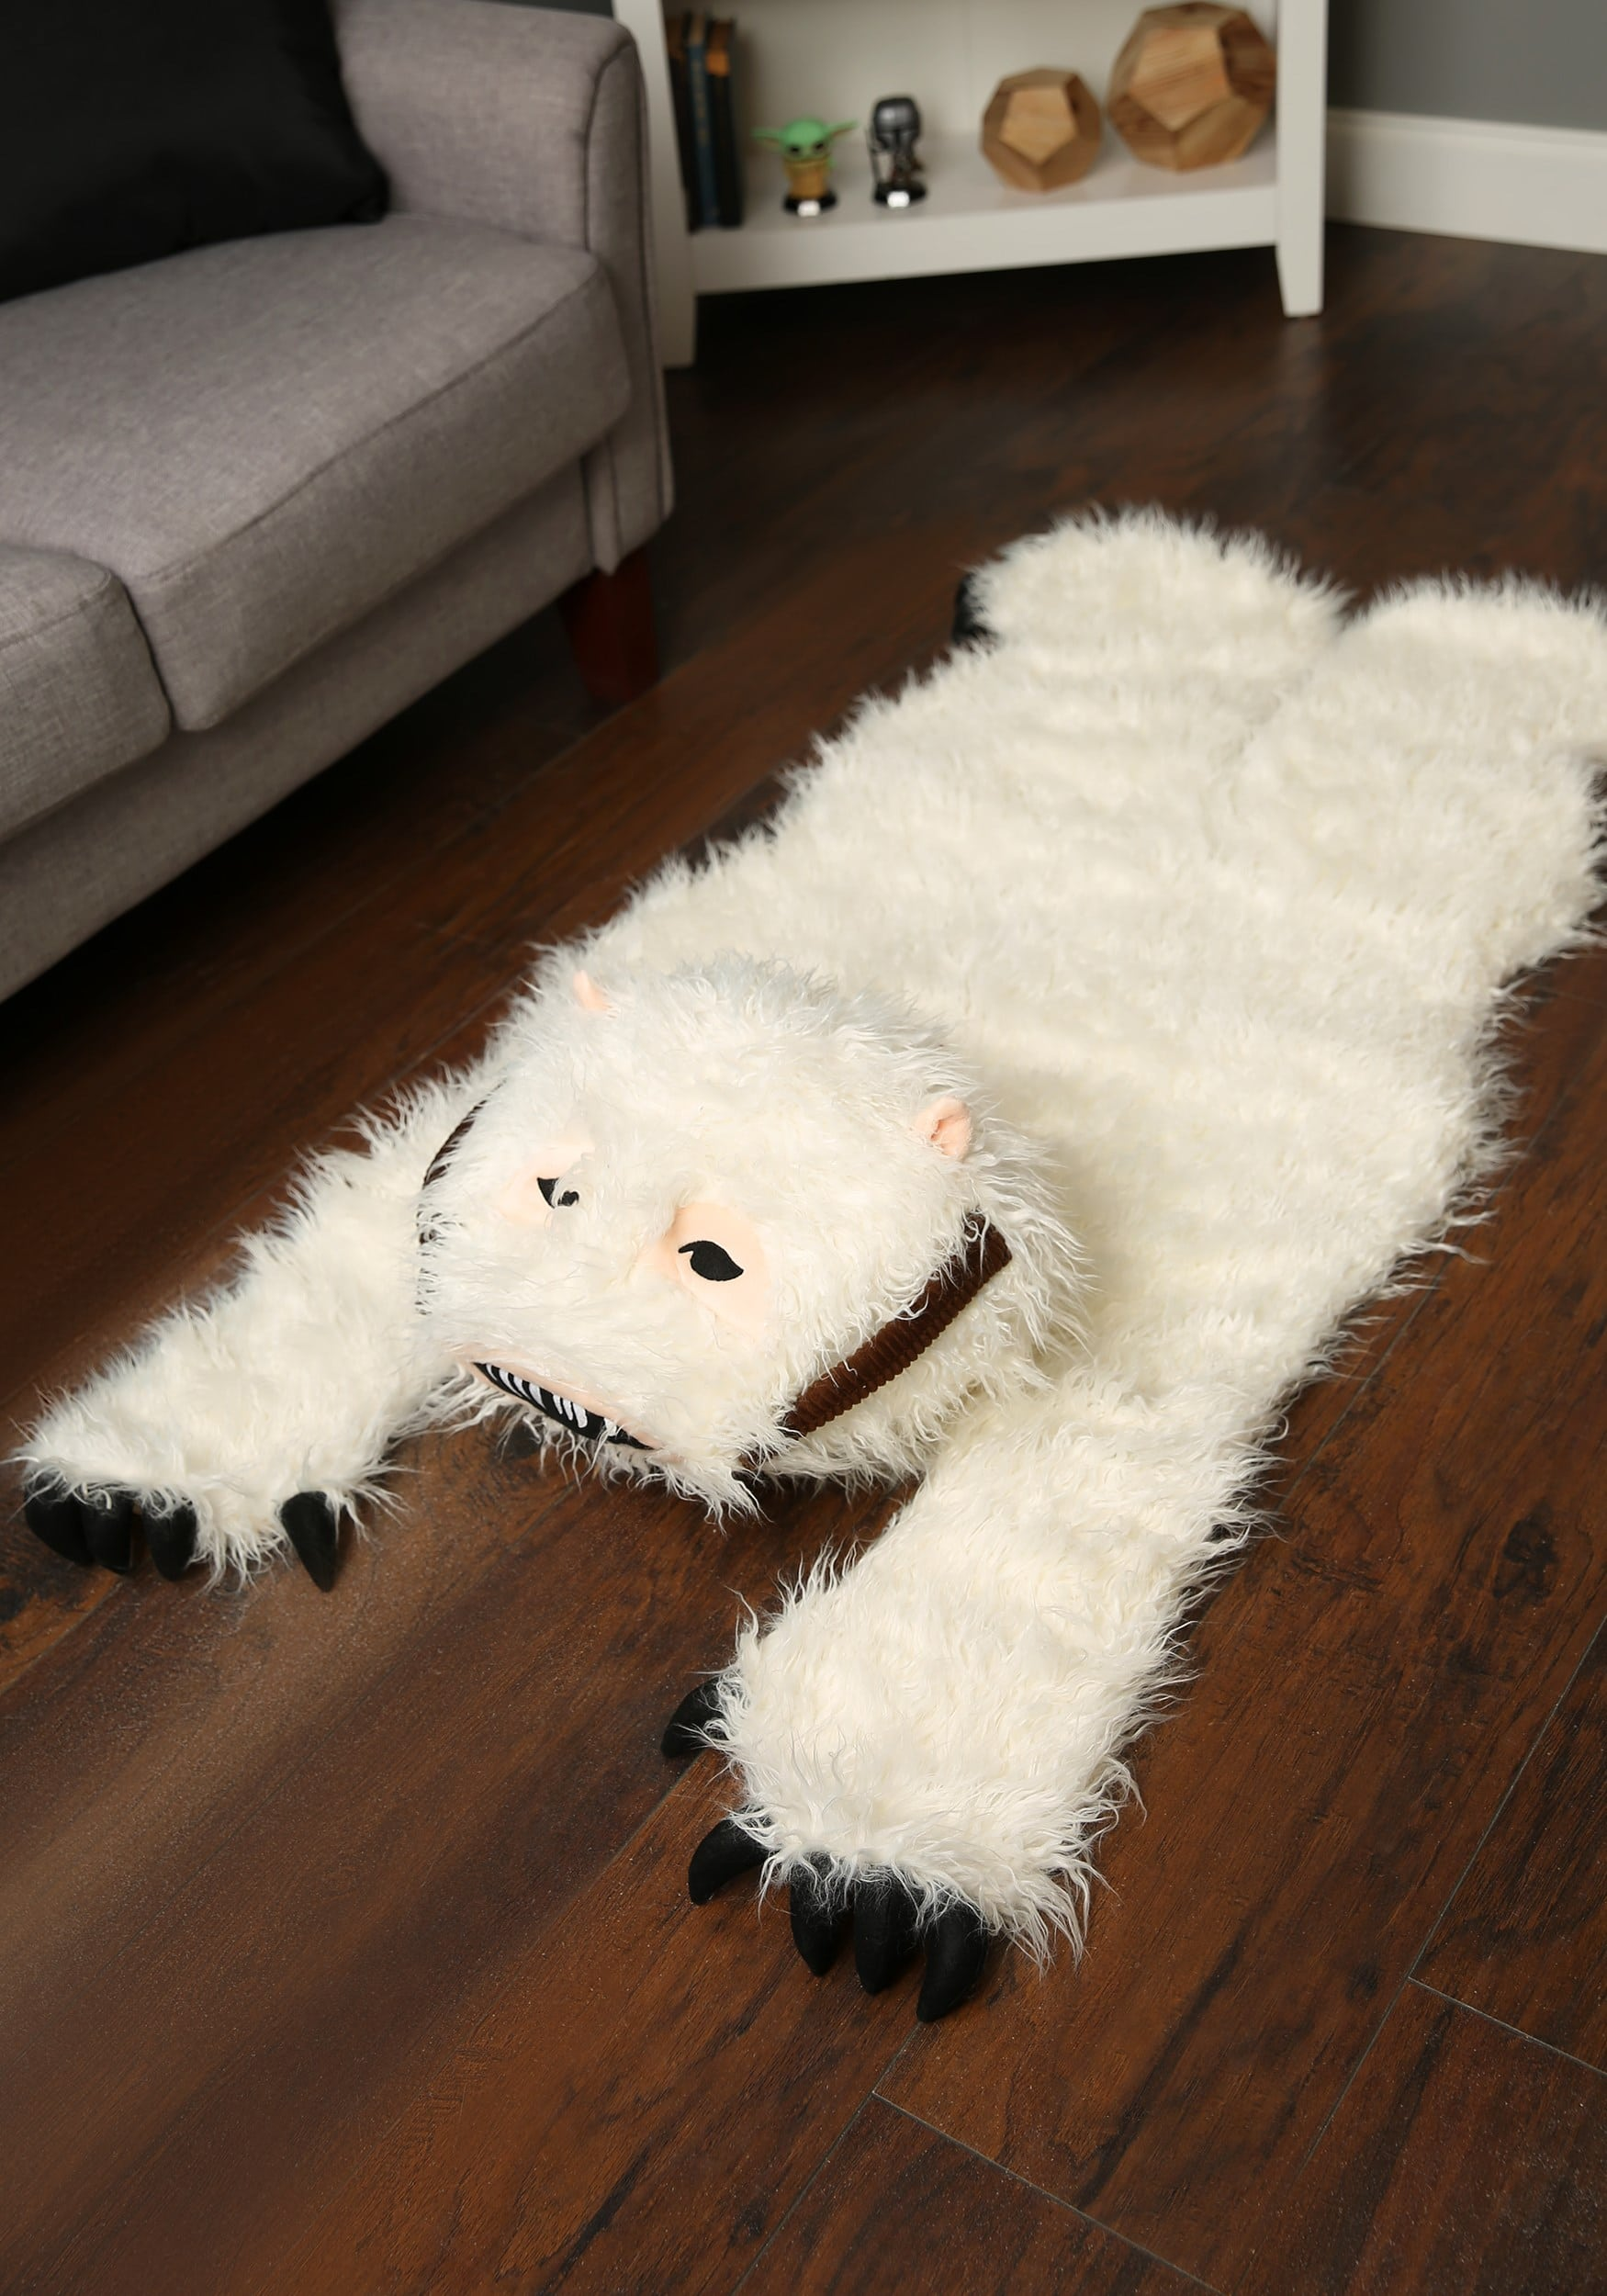 Star Wars Wampa Rug Available to Satisfy Your Hoth Hunting Trip Fantasies